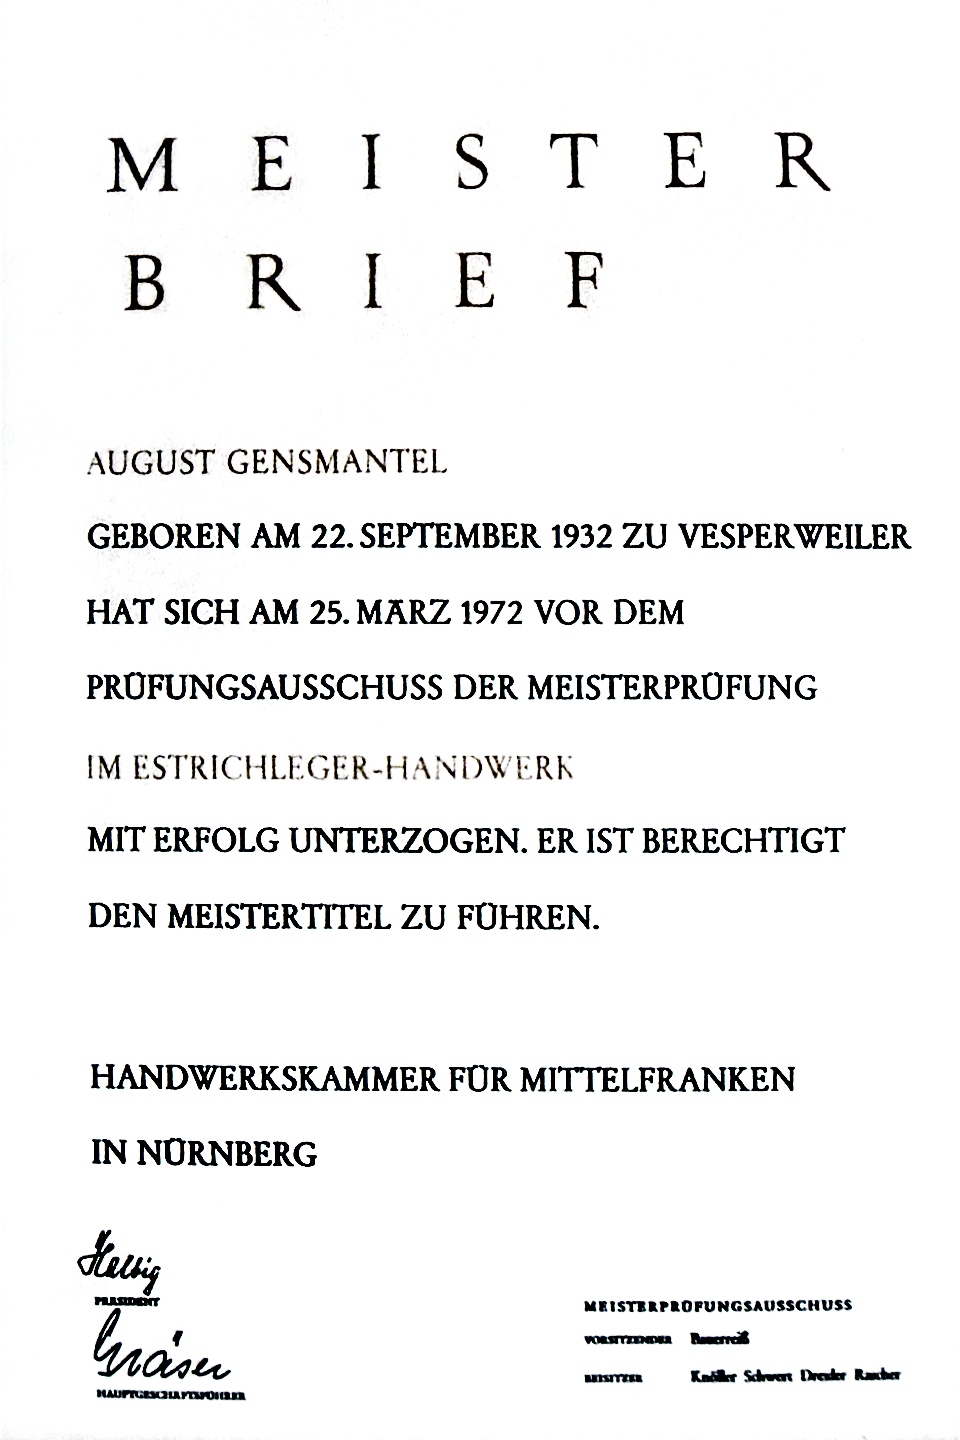 Meisterbrief: August Gensmantel